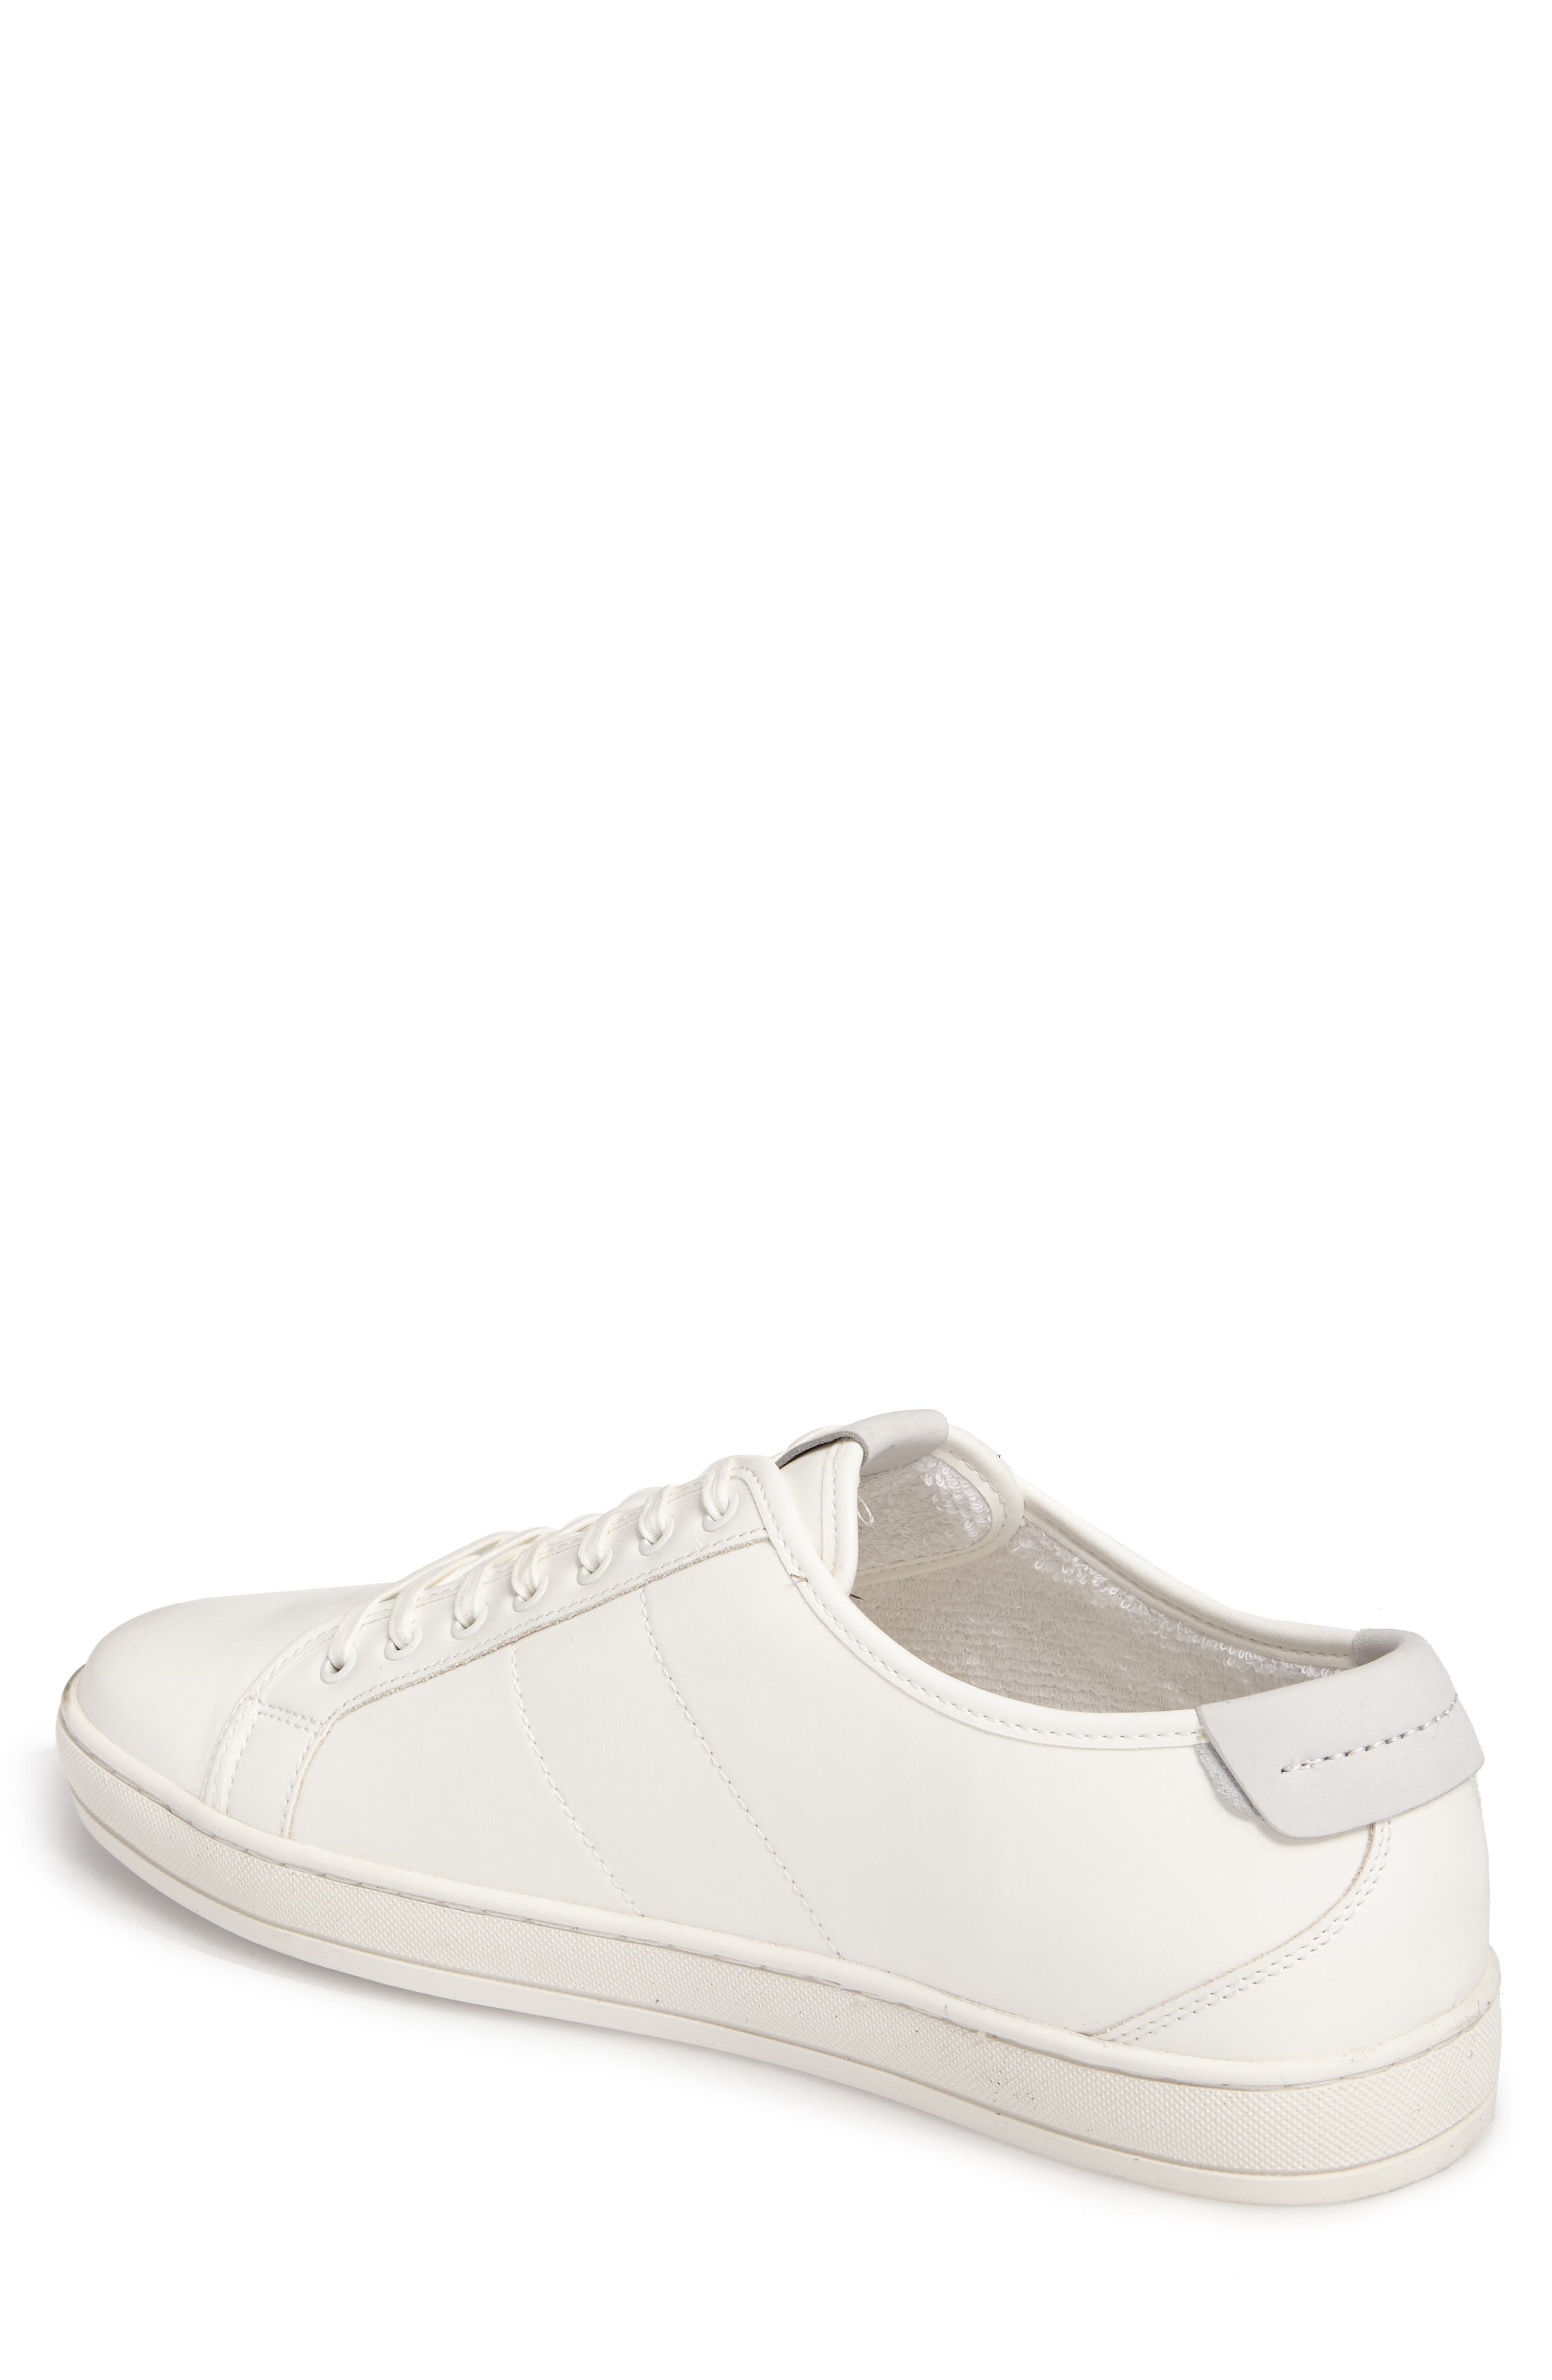 Delello Low-Top Sneaker,                             Alternate thumbnail 4, color,